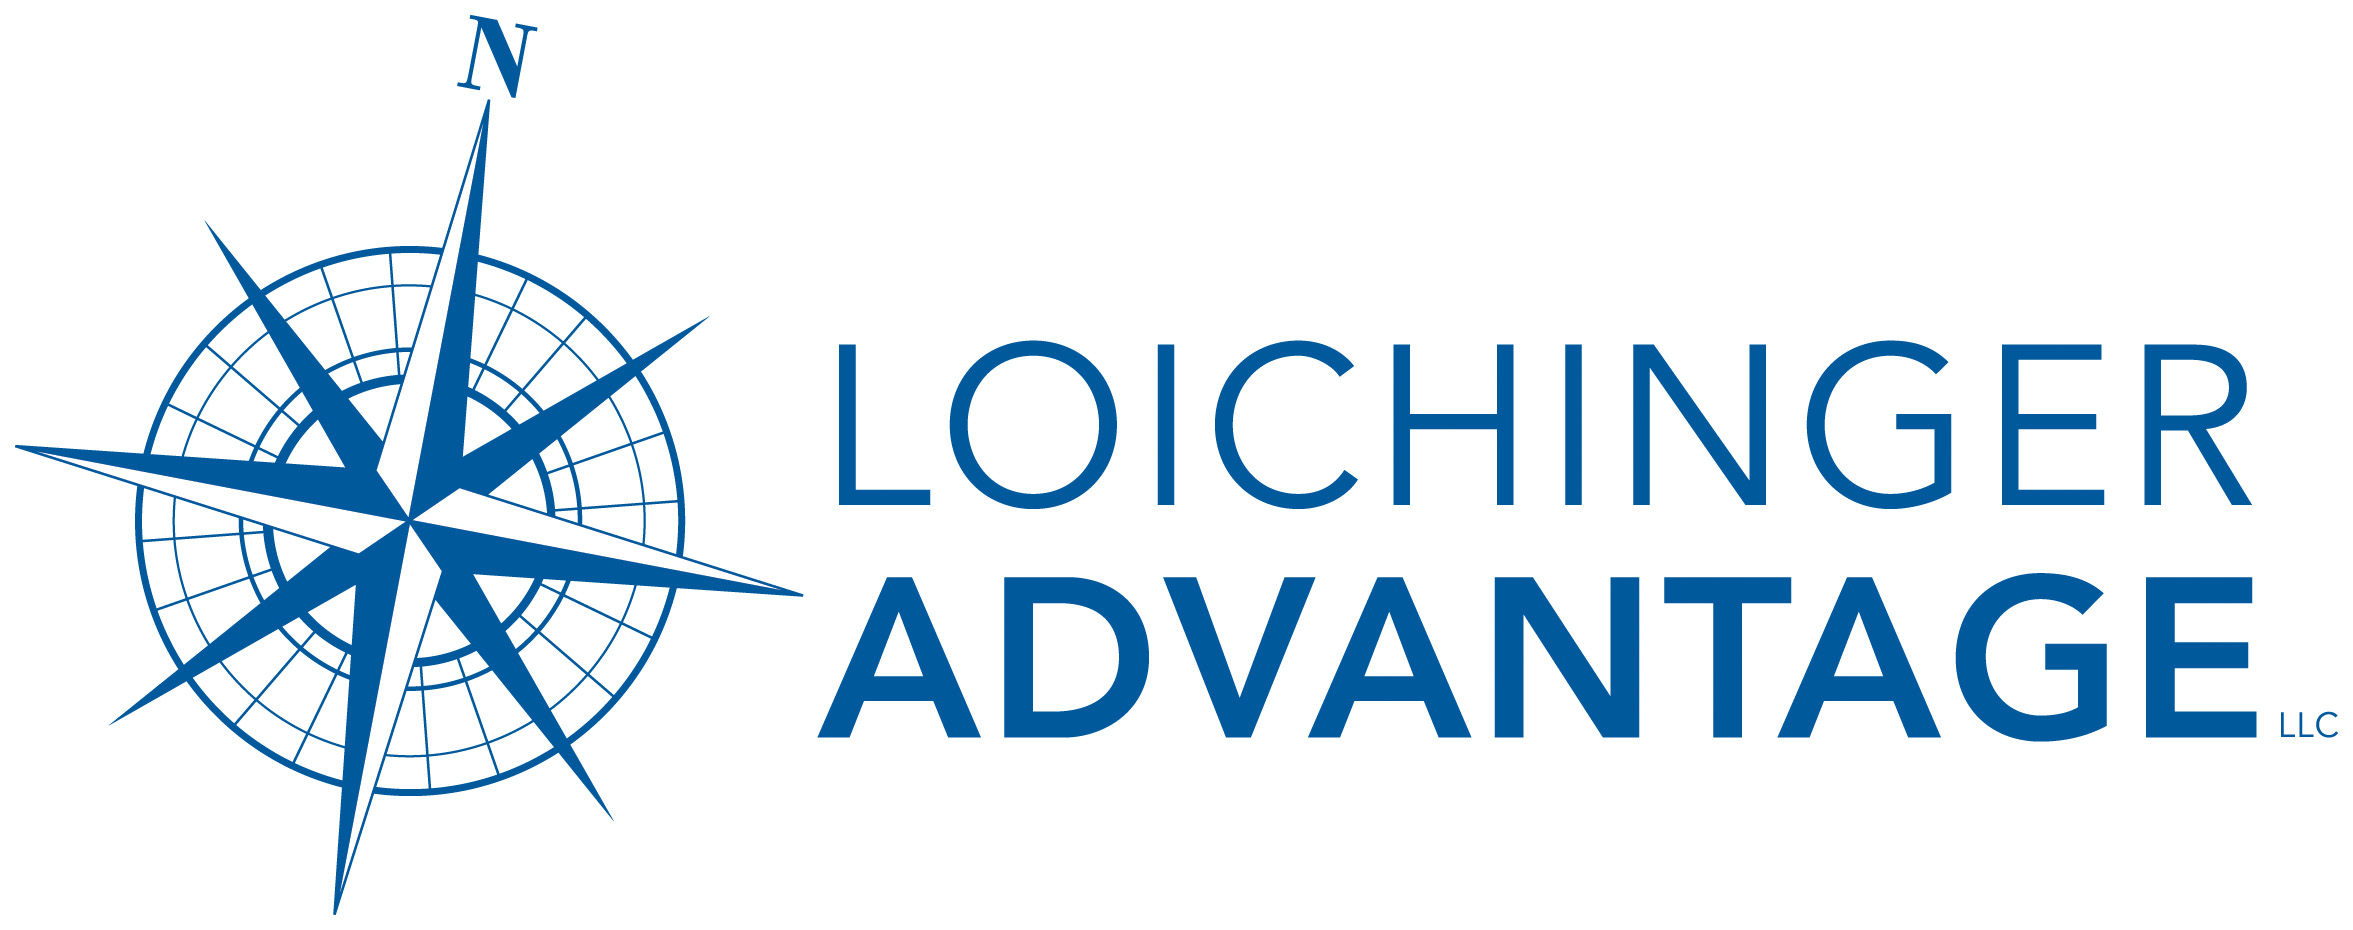 loichinger advantage